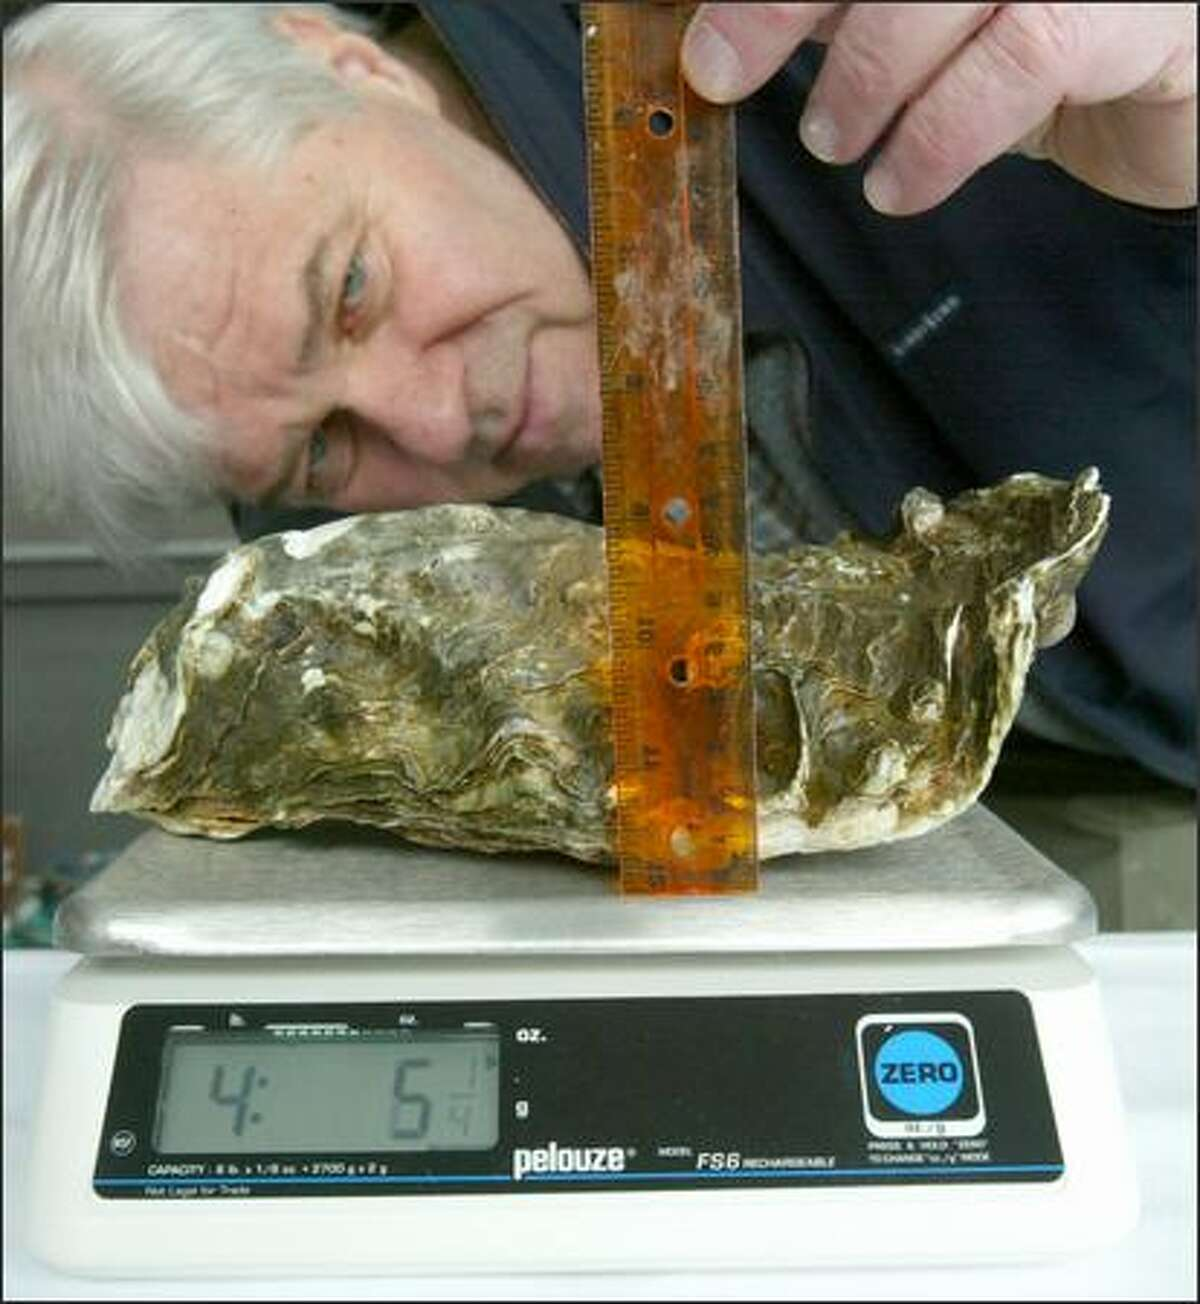 Jon Rowley, master of ceremonies Tuesday for the 17th Annual Anthony's Oyster Olympics, checks the height of an entry in the largest oyster contest. Although the weight of the rule is added to the scale in this picture, the official weight of the Pacific oyster was 3 pounds, 14 ounces. The winner, a tad heavier, was picked by Arthuro Martinez of Taylor Shellfish. More than 800 dozen regular-size oysters were weighed, identified, shucked, barbecued or eaten raw, and most went home in the bellies of about 550 people at the sold-out event at the Anthony's restaurant at 6135 Seaview Ave. N.W. The festivities benefited the Puget Soundkeeper Alliance.